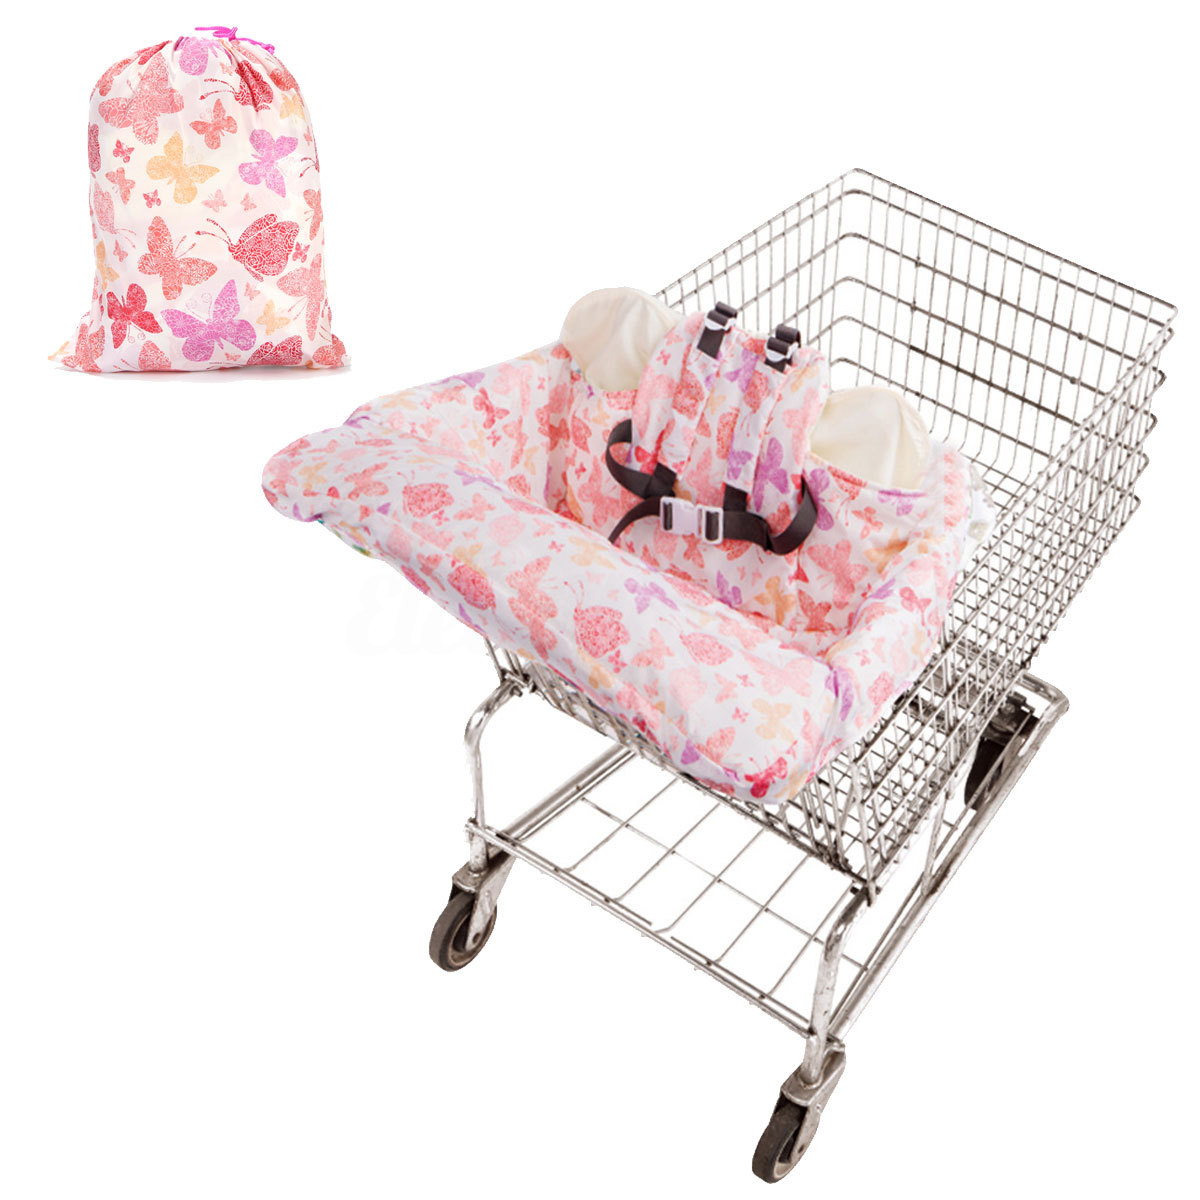 Foldable Baby Shopping Cart Baby Seat Cover with Safety Belt Protection Cover Tr